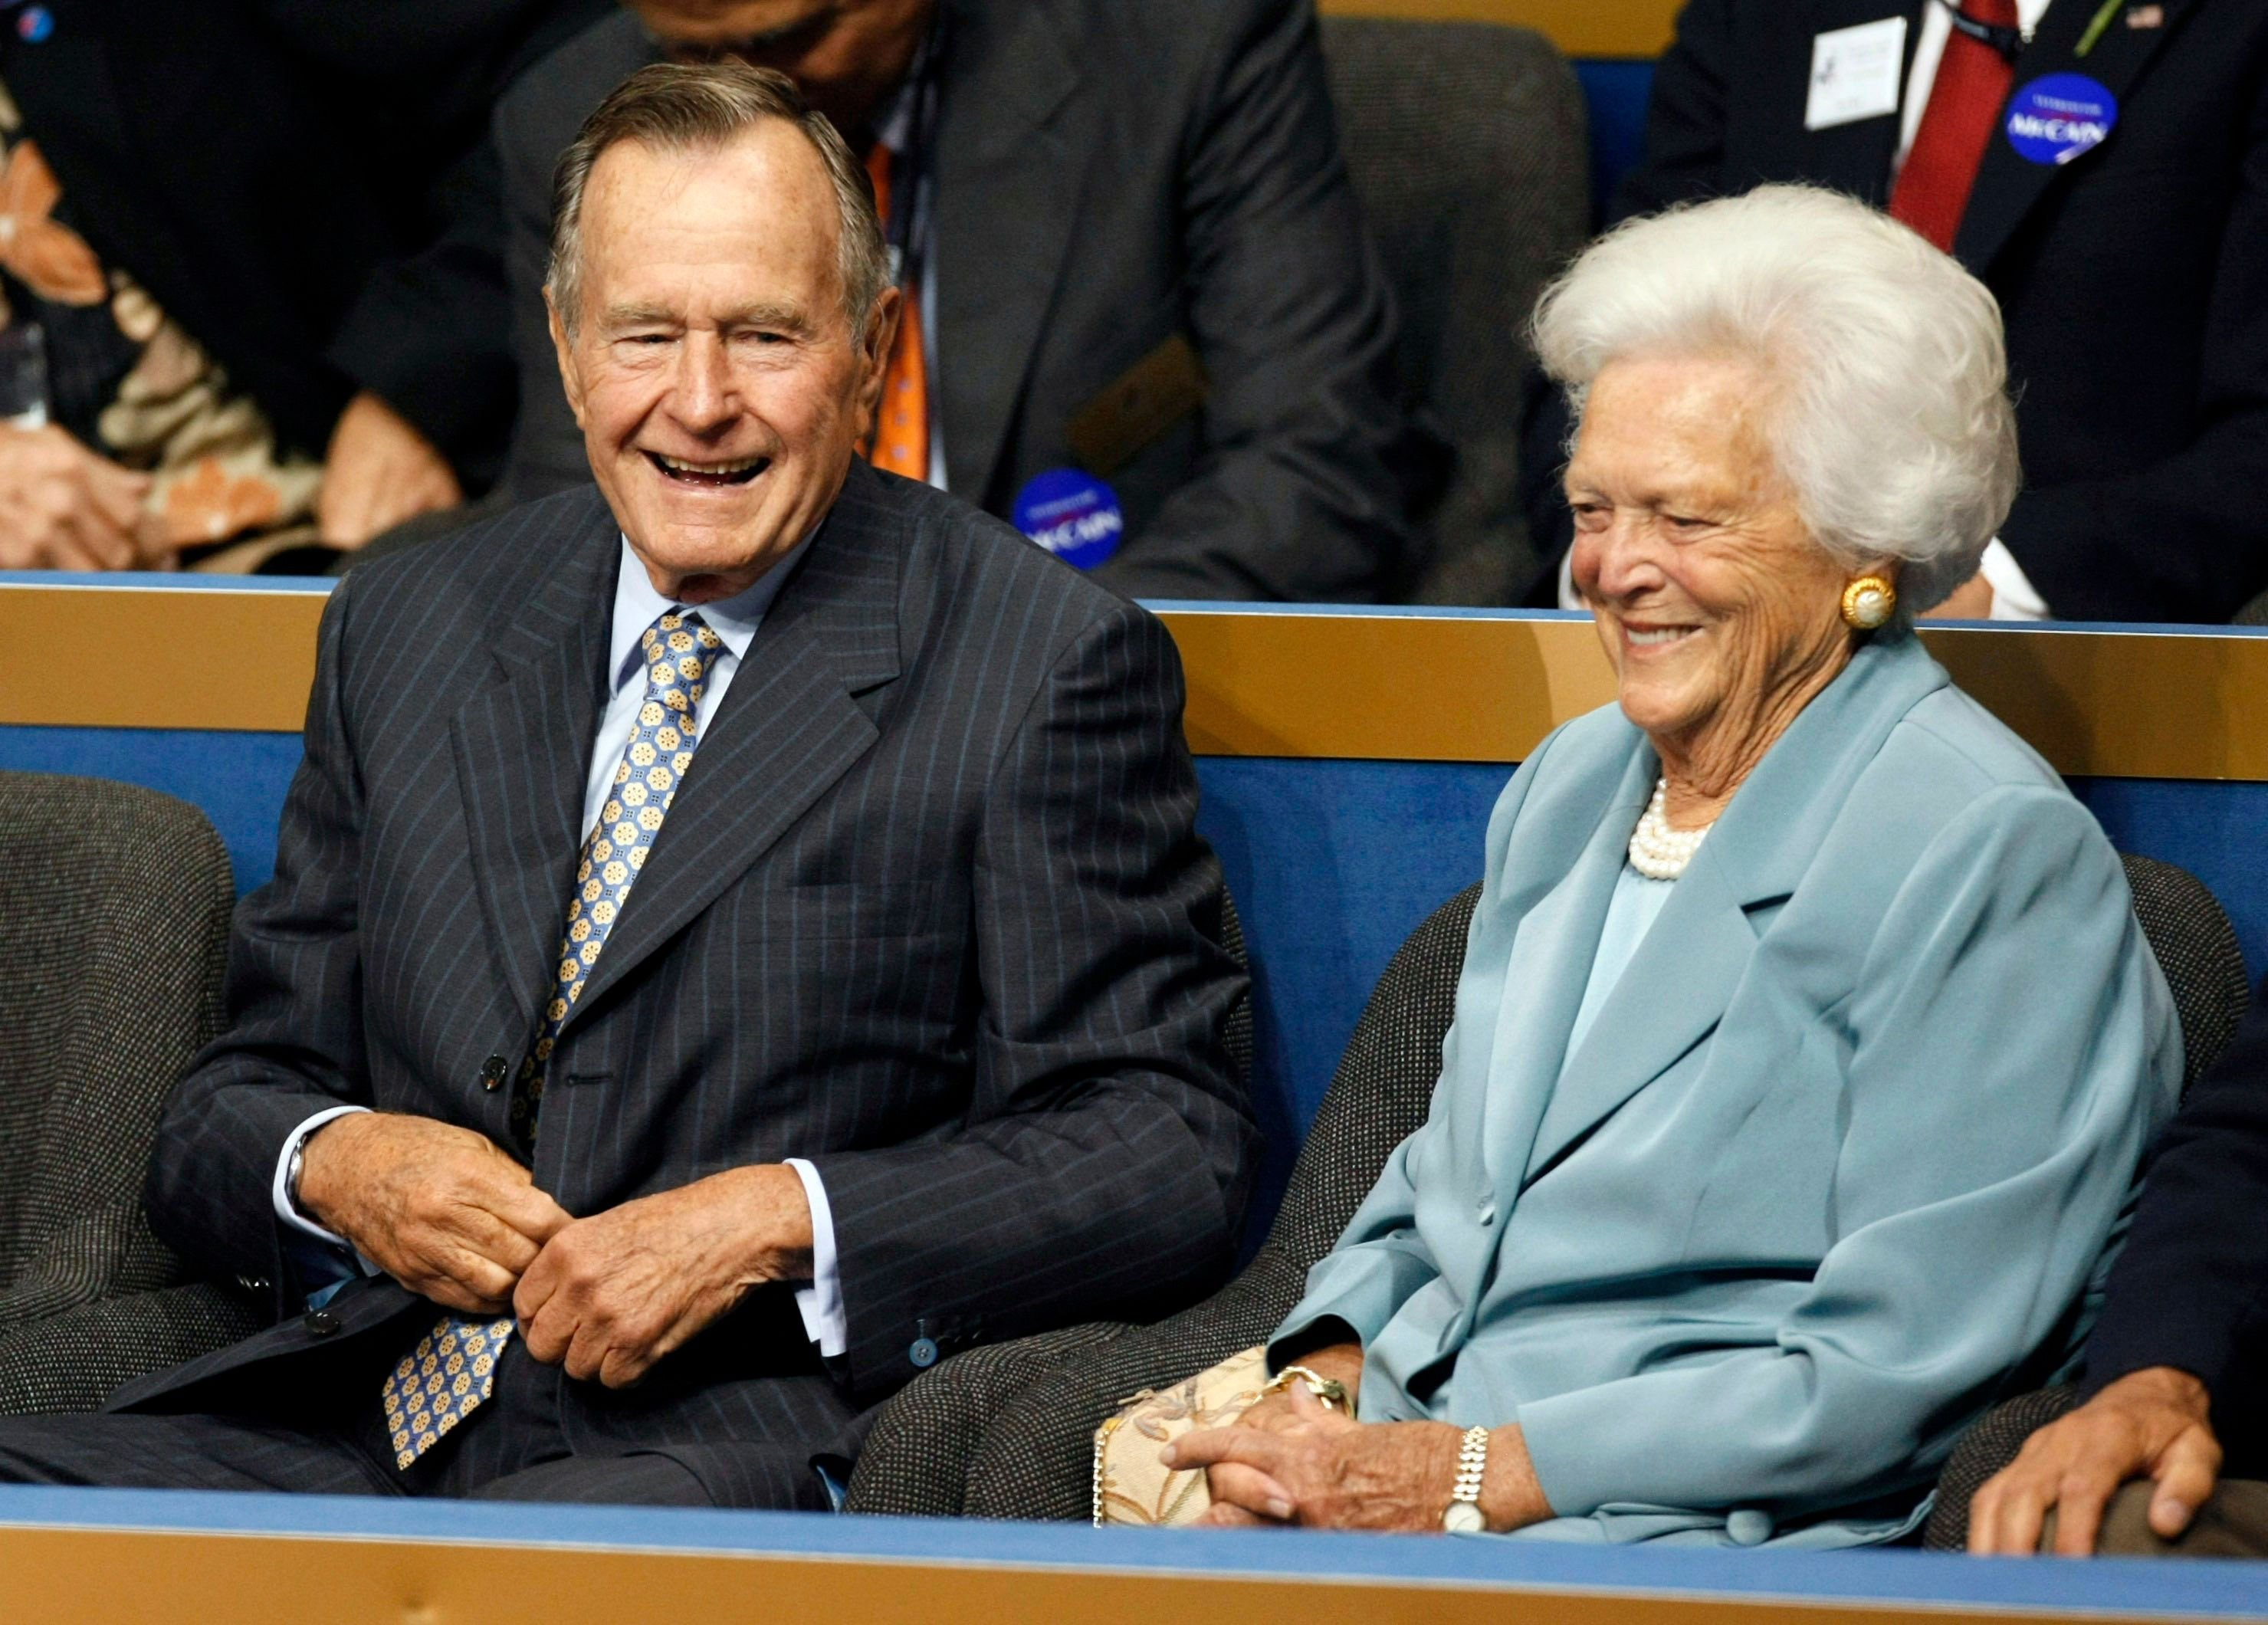 Former President George H. W. Bush and his wife Barbara Bush arrive at the second session of the 2008 Republican National Convention in St. Paul, Minnesota in this file photo taken on September 2, 2008. Barbara Bush was taken to a Houston, Texas, area hospital complaining of abdominal pain, according to news reports.  REUTERS/Rick Wilking/Files       (UNITED STATES)